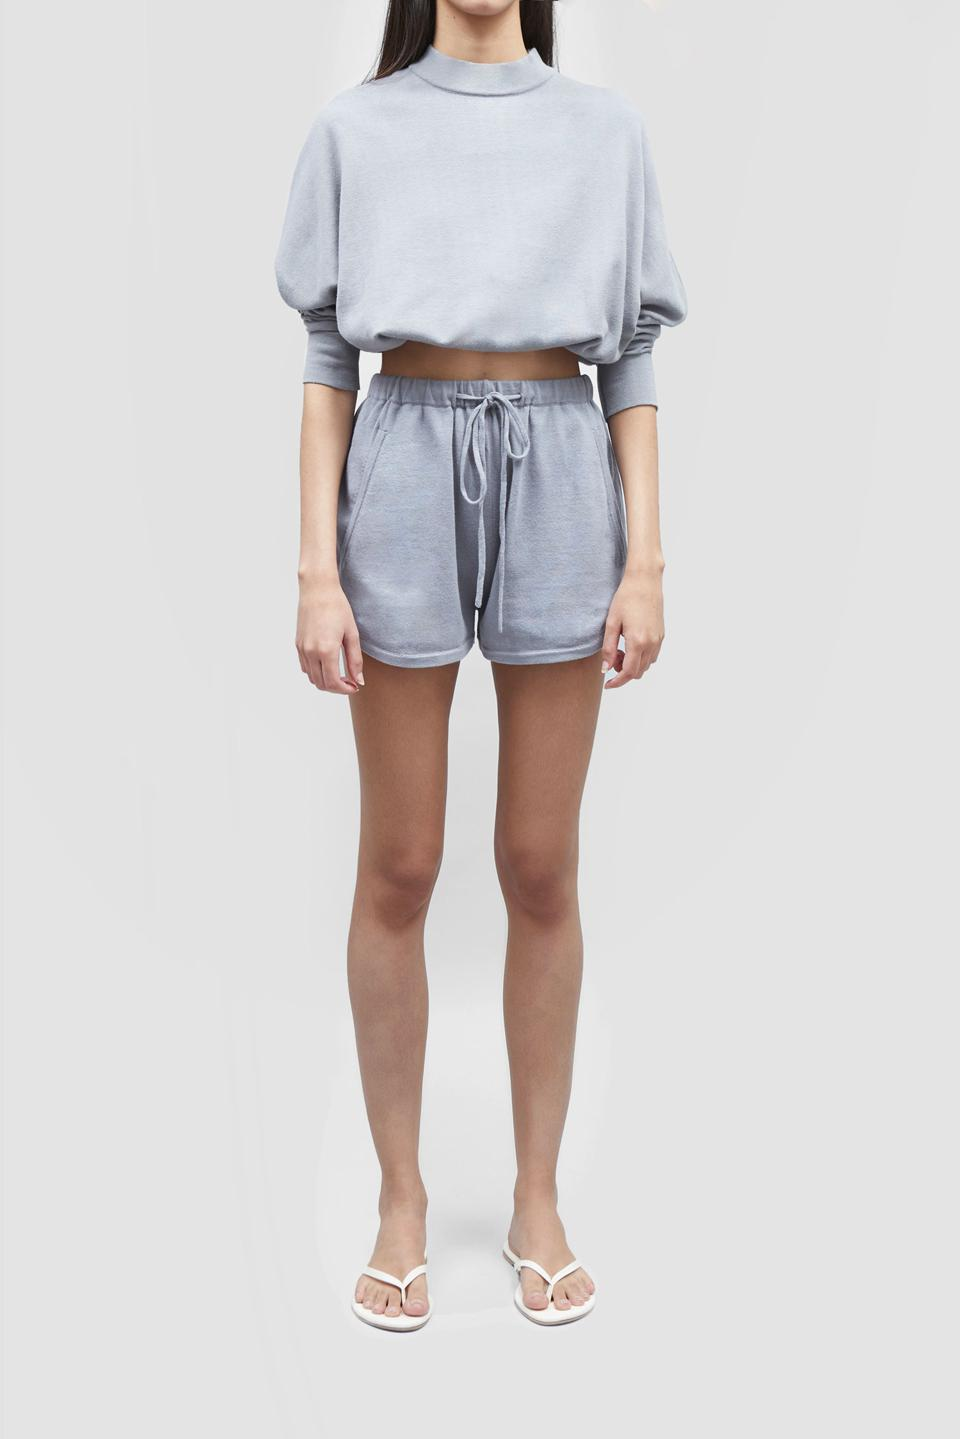 Cropped sweater and runner shorts in shade Stone from PATTON STUDIO